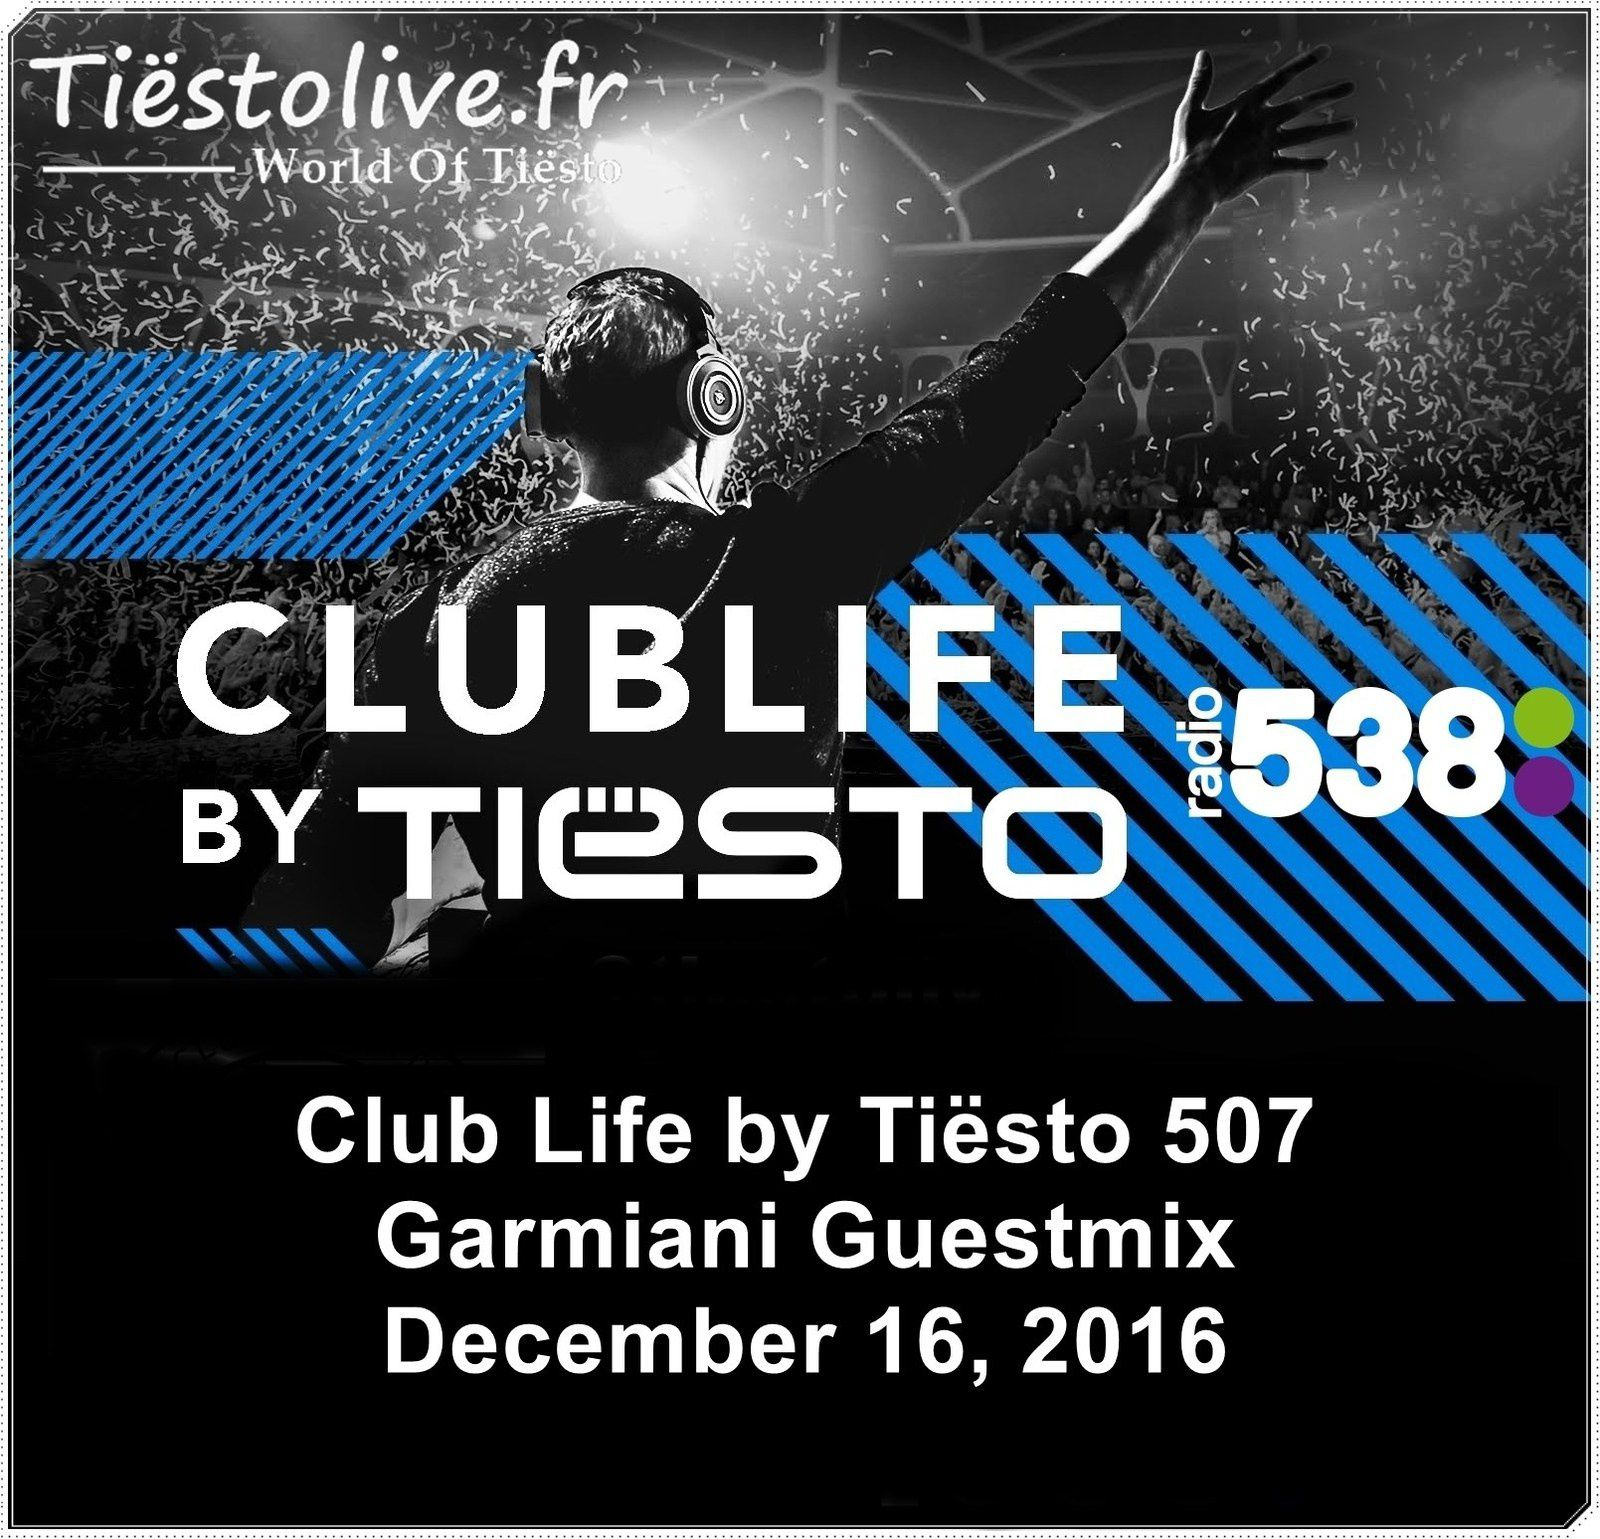 Club Life by Tiësto 507 - Garmiani Guestmix - December 16, 2016